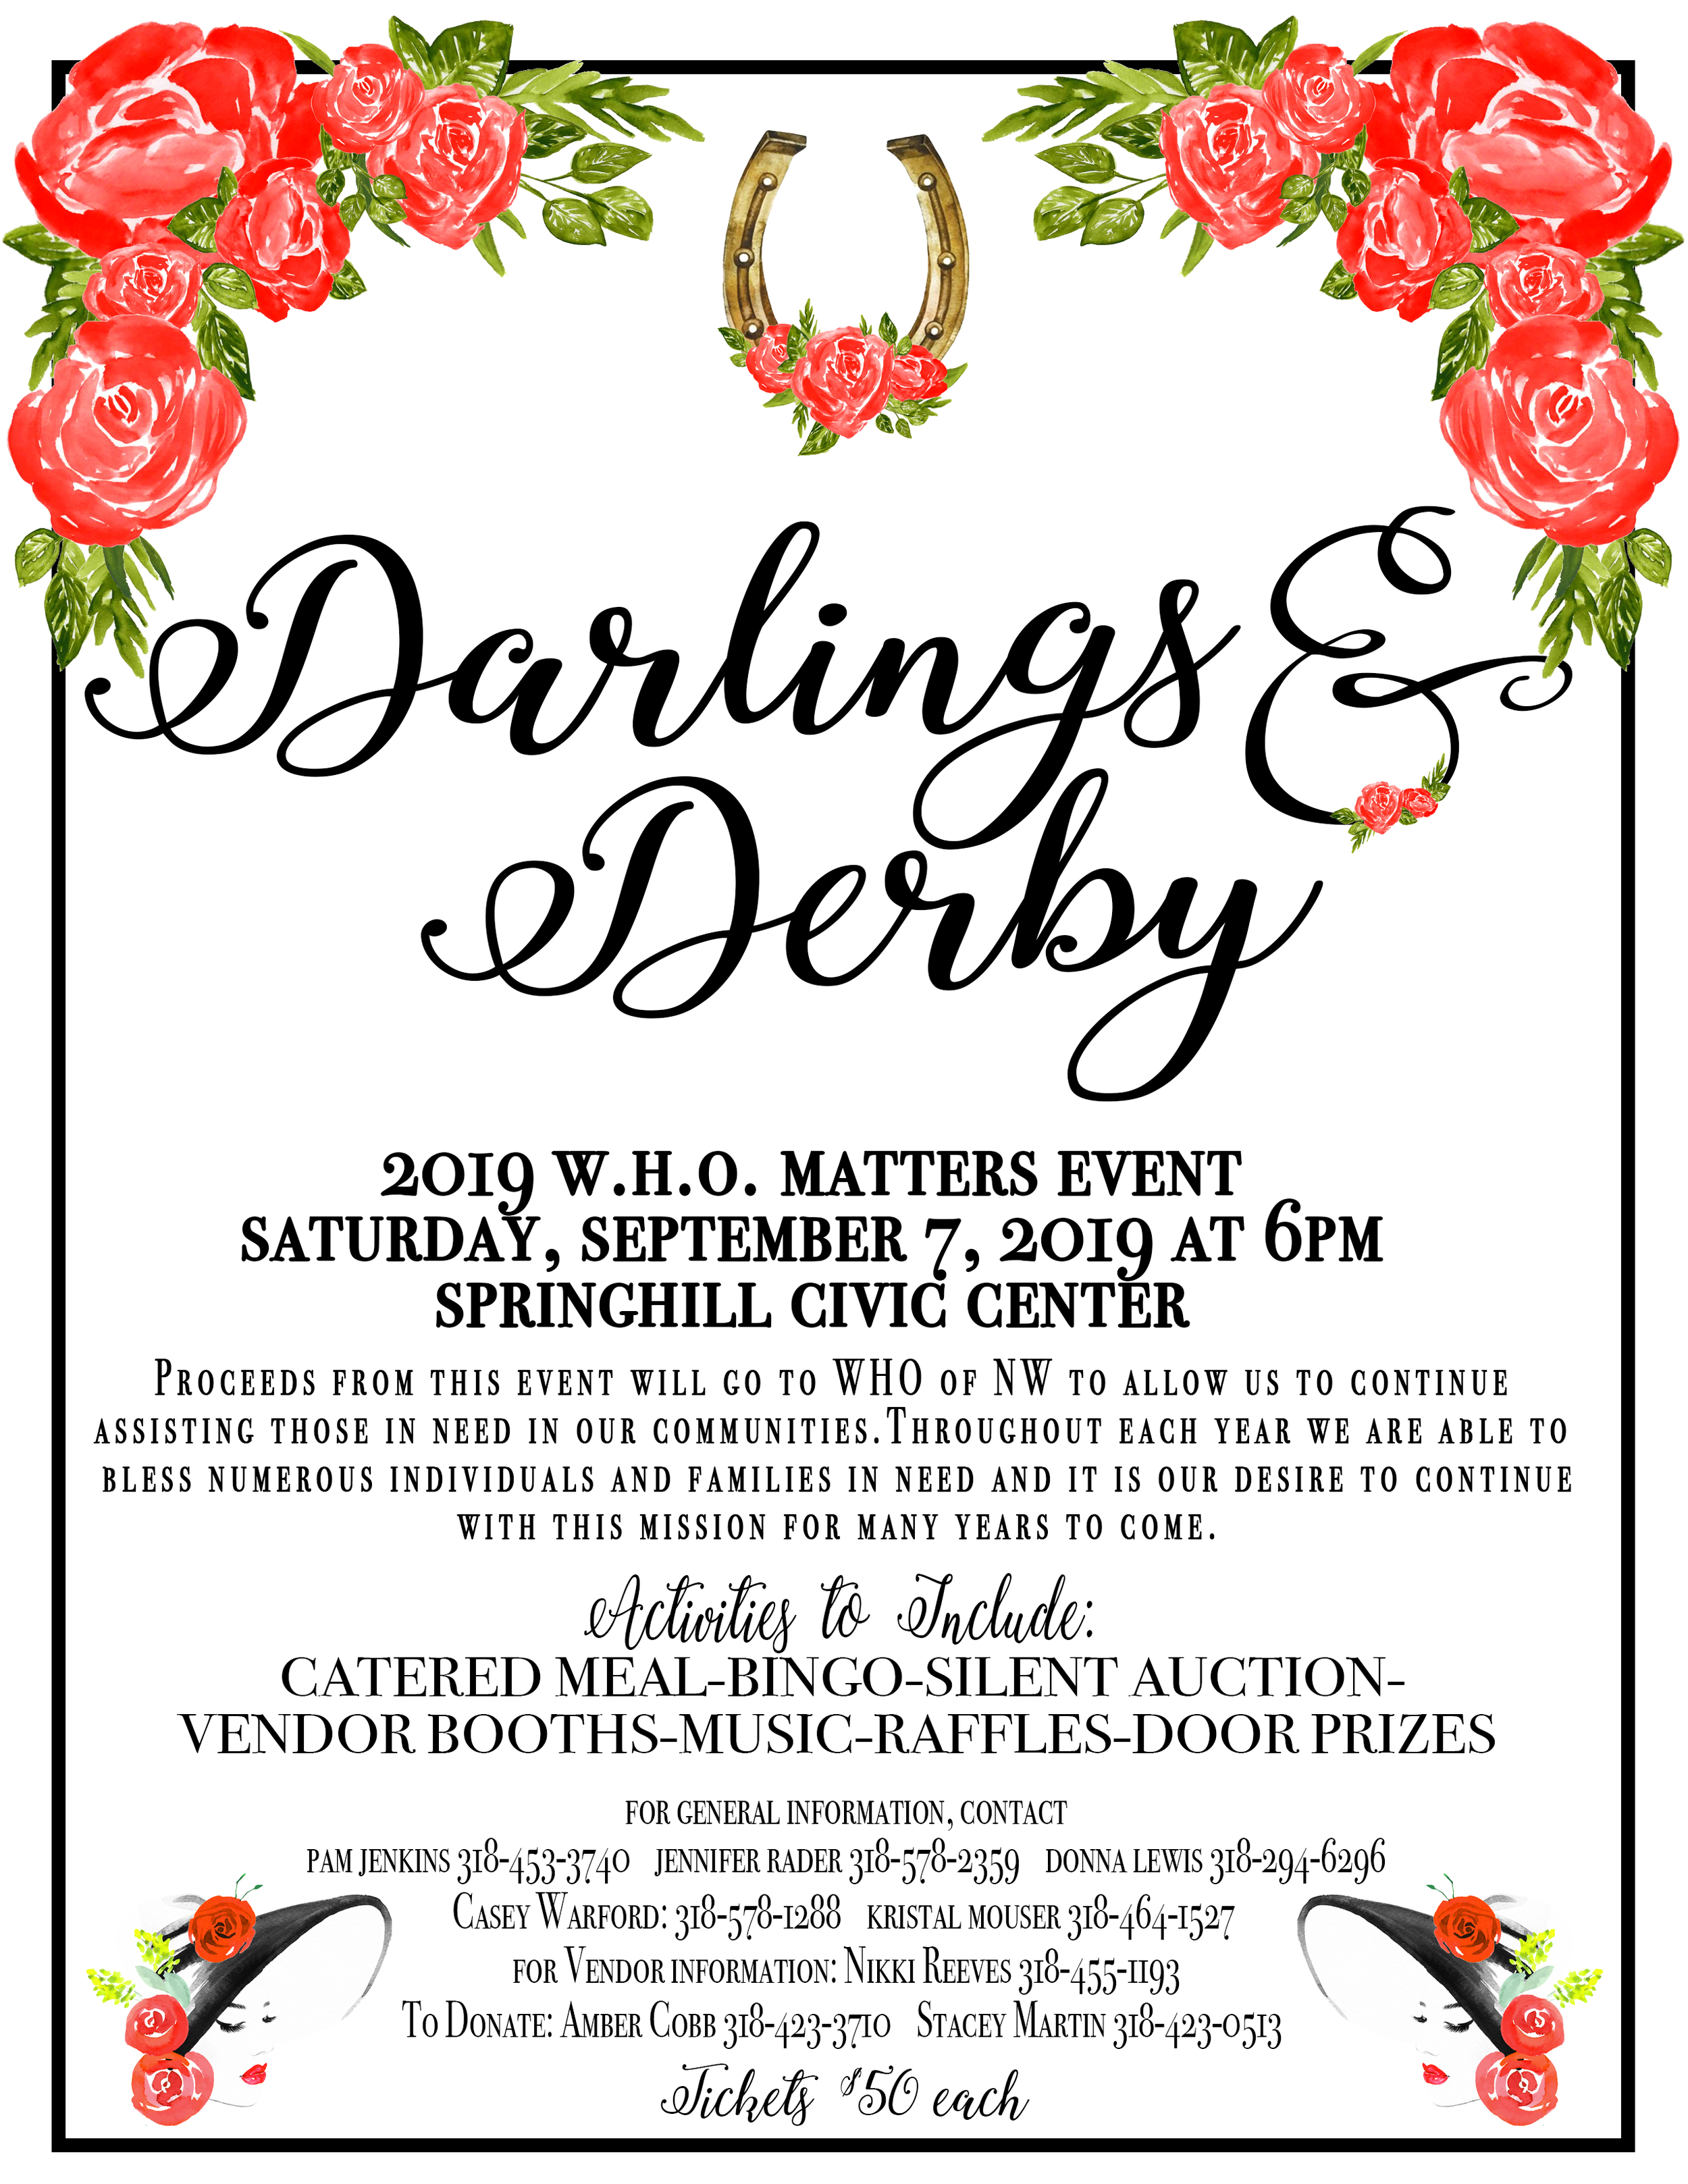 WHO 2019 Darlings and Derby Flyer.PNG